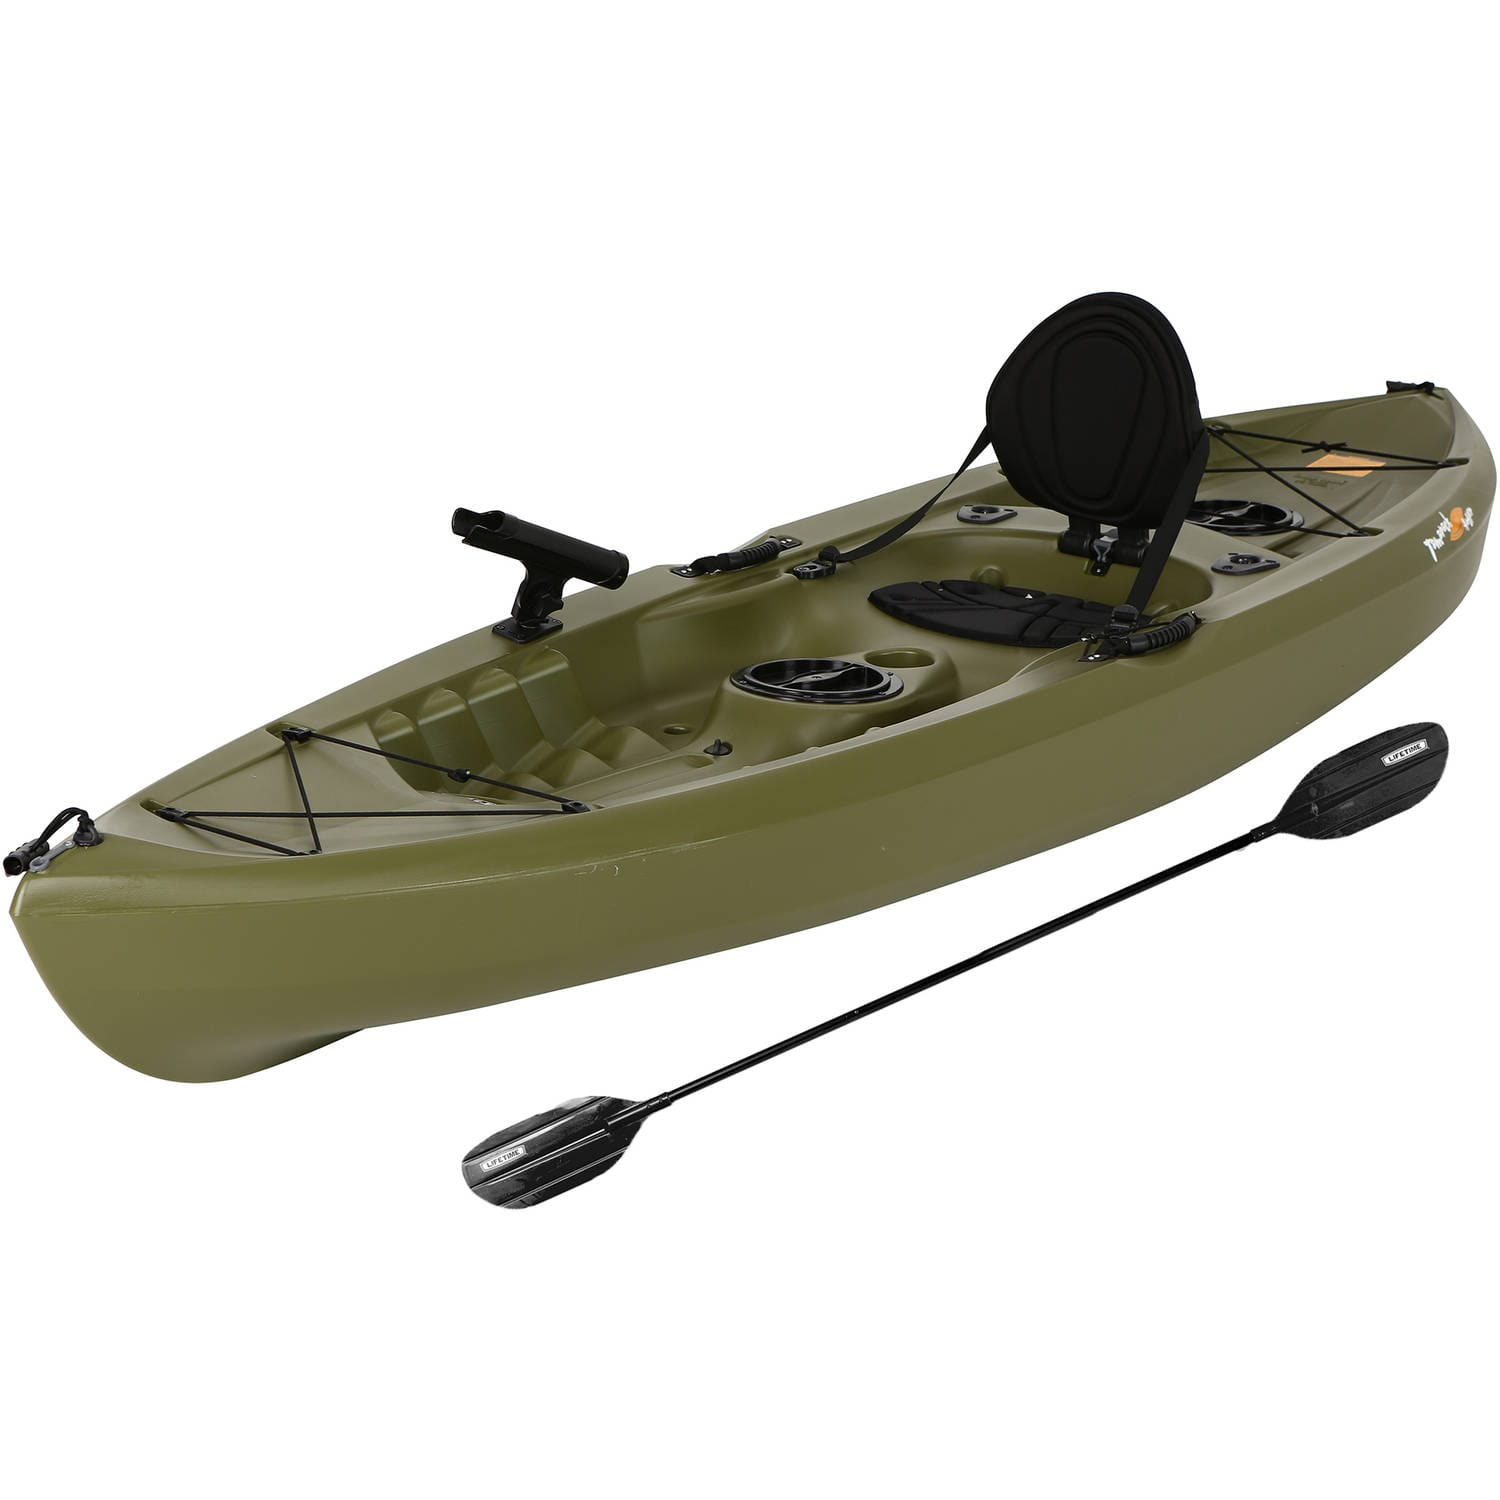 Lifetime Tamarack 120 Fishing Kayak - $215.43